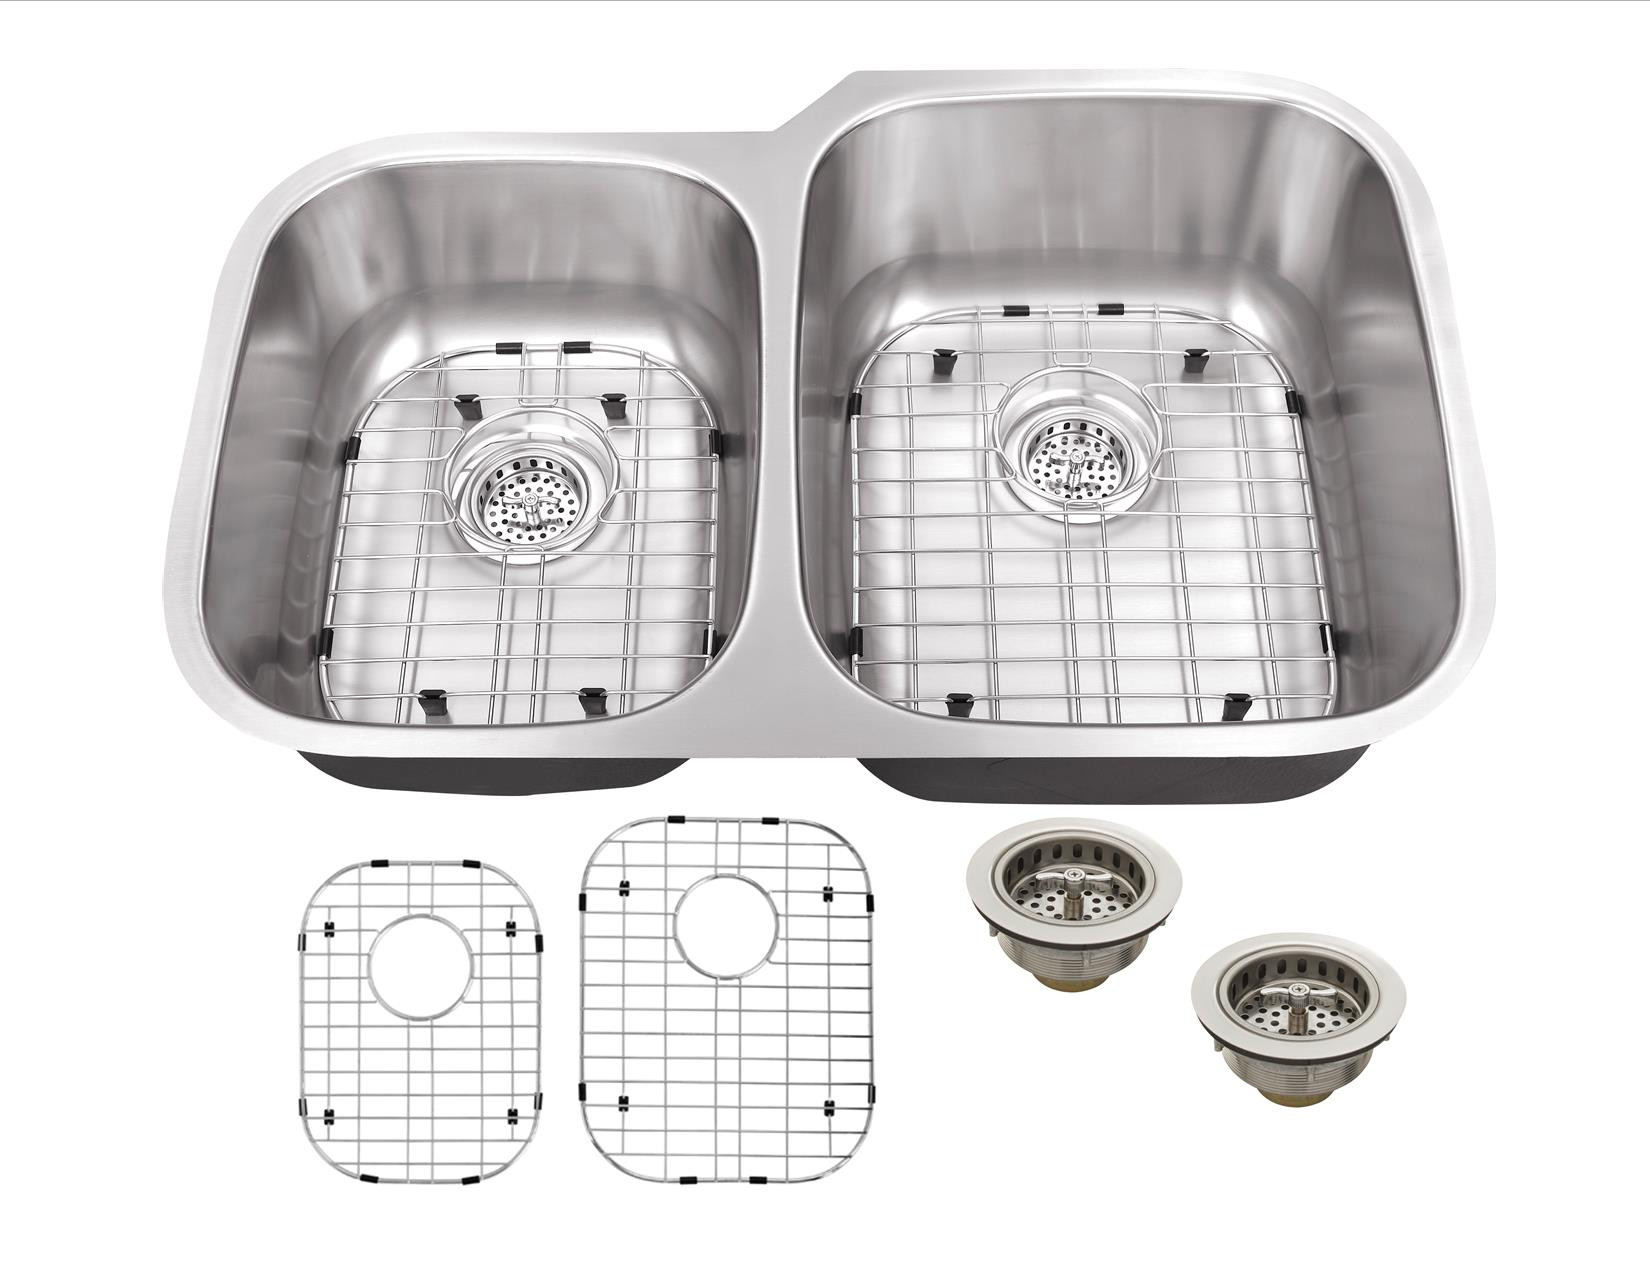 Cahaba CA122332 18 Gauge Double Bowl Kitchen Sink With Grid Sets and Drain